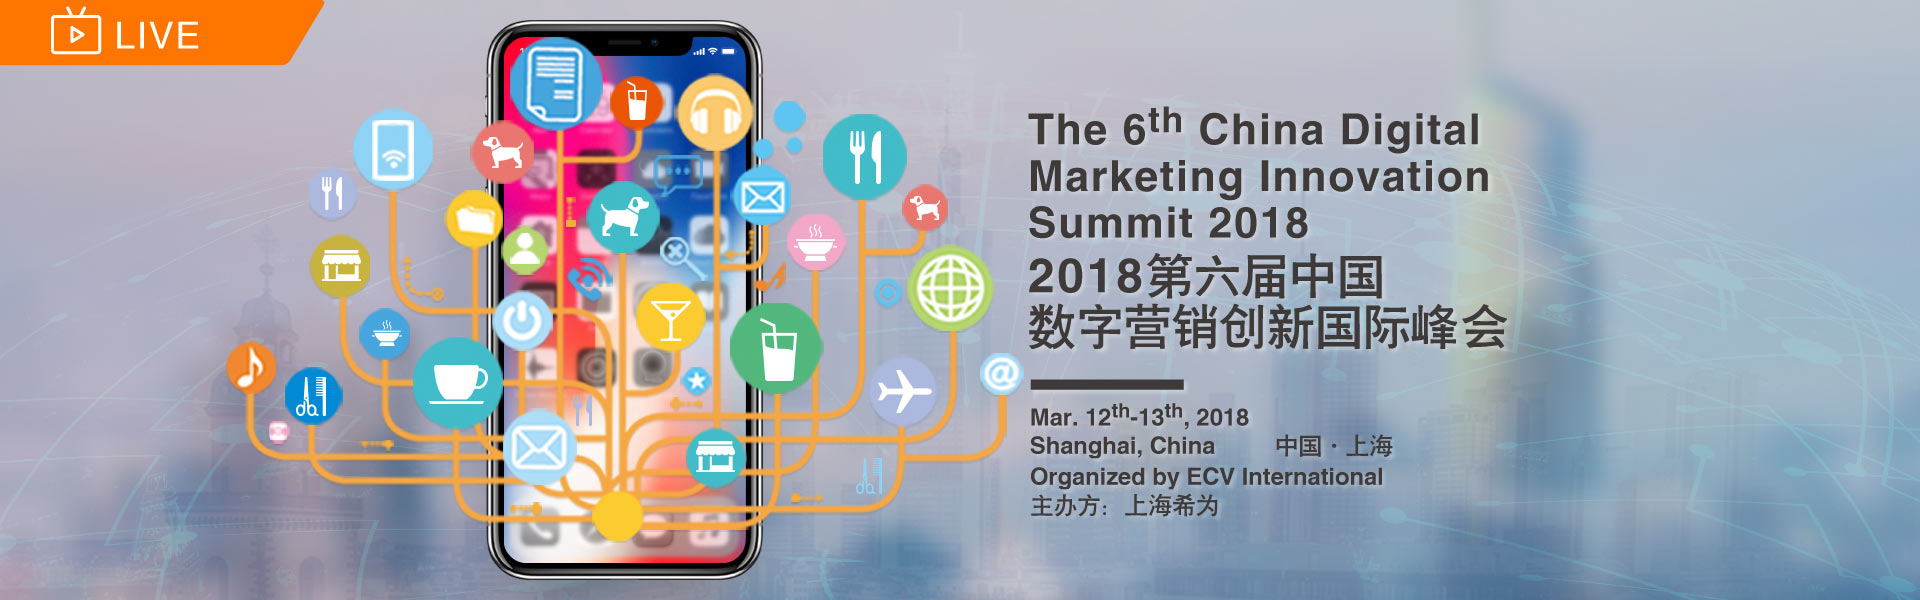 The 6th China Digital Marketing Innovation Summit 2018